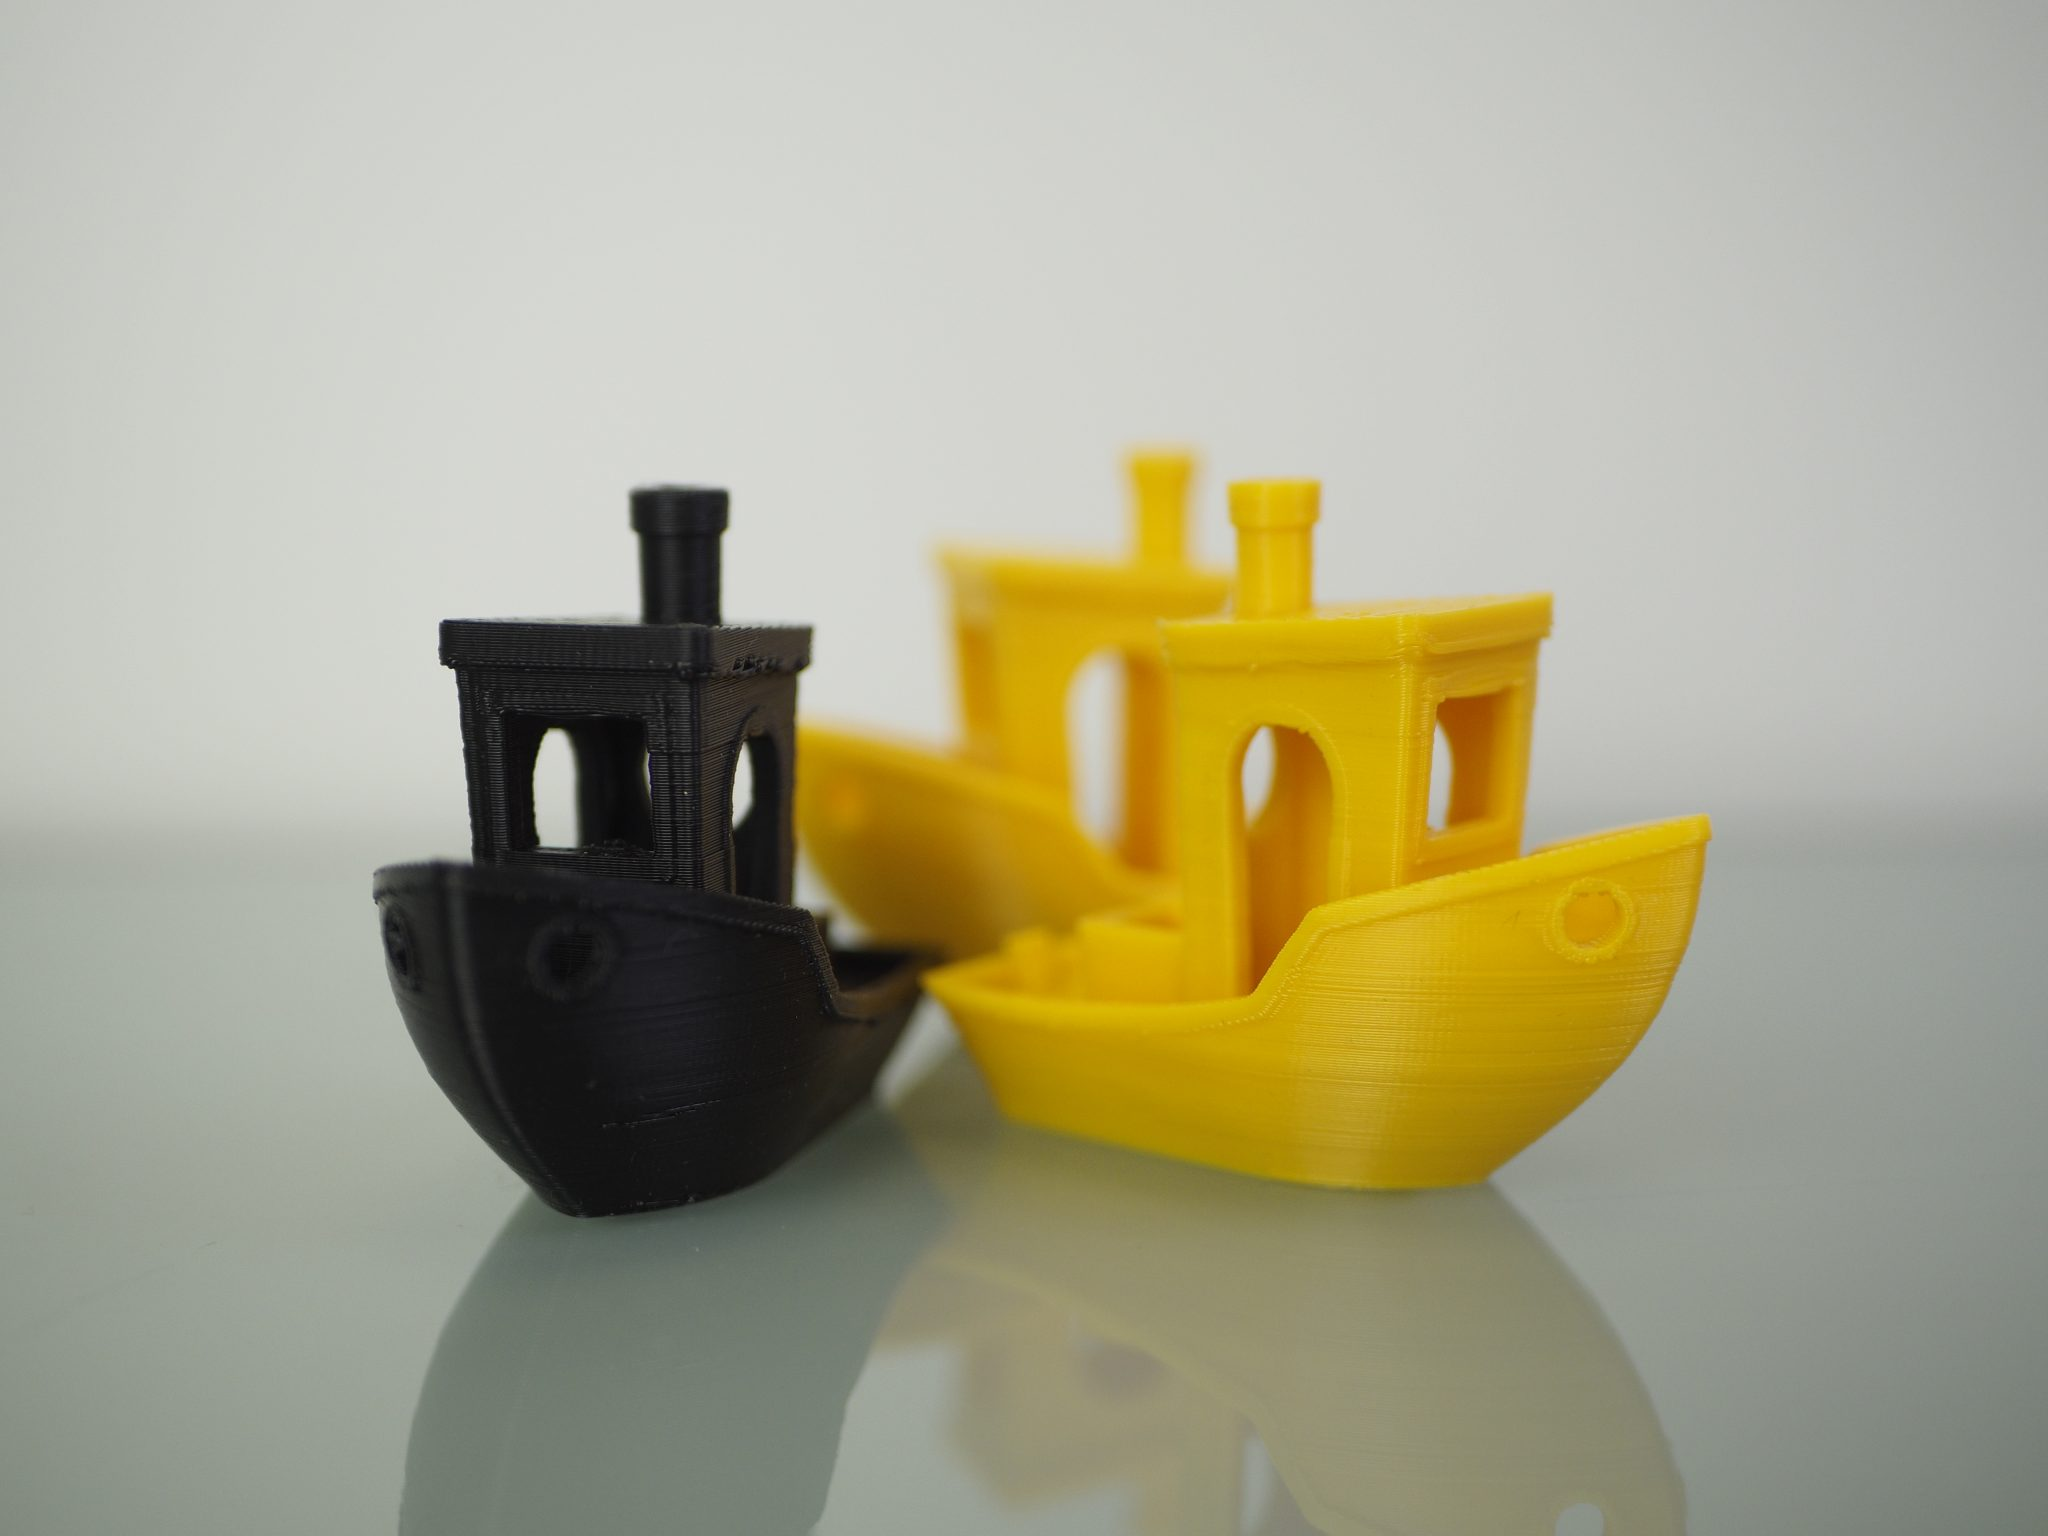 Set of benchy models 3D printed on the Kodak Portrait. Photo by 3D Printing Industry.